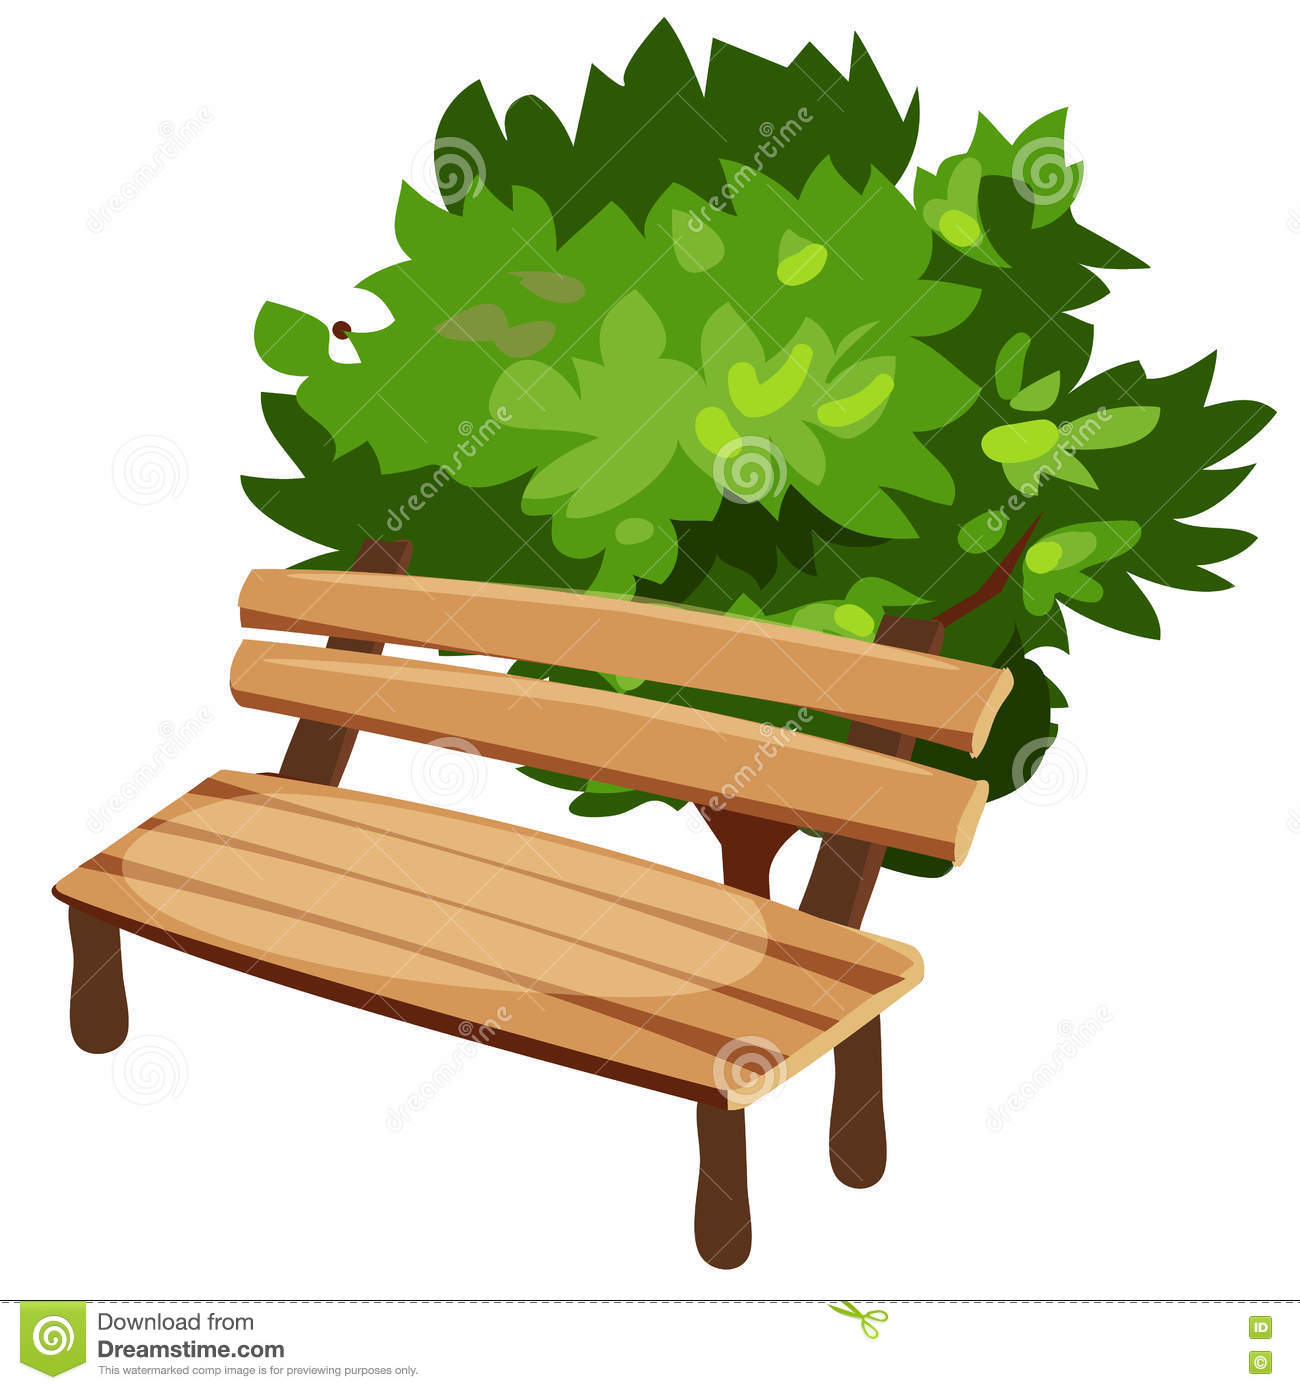 Wooden Bench And Tree, Cartoon Style Stock Vector - Image ...